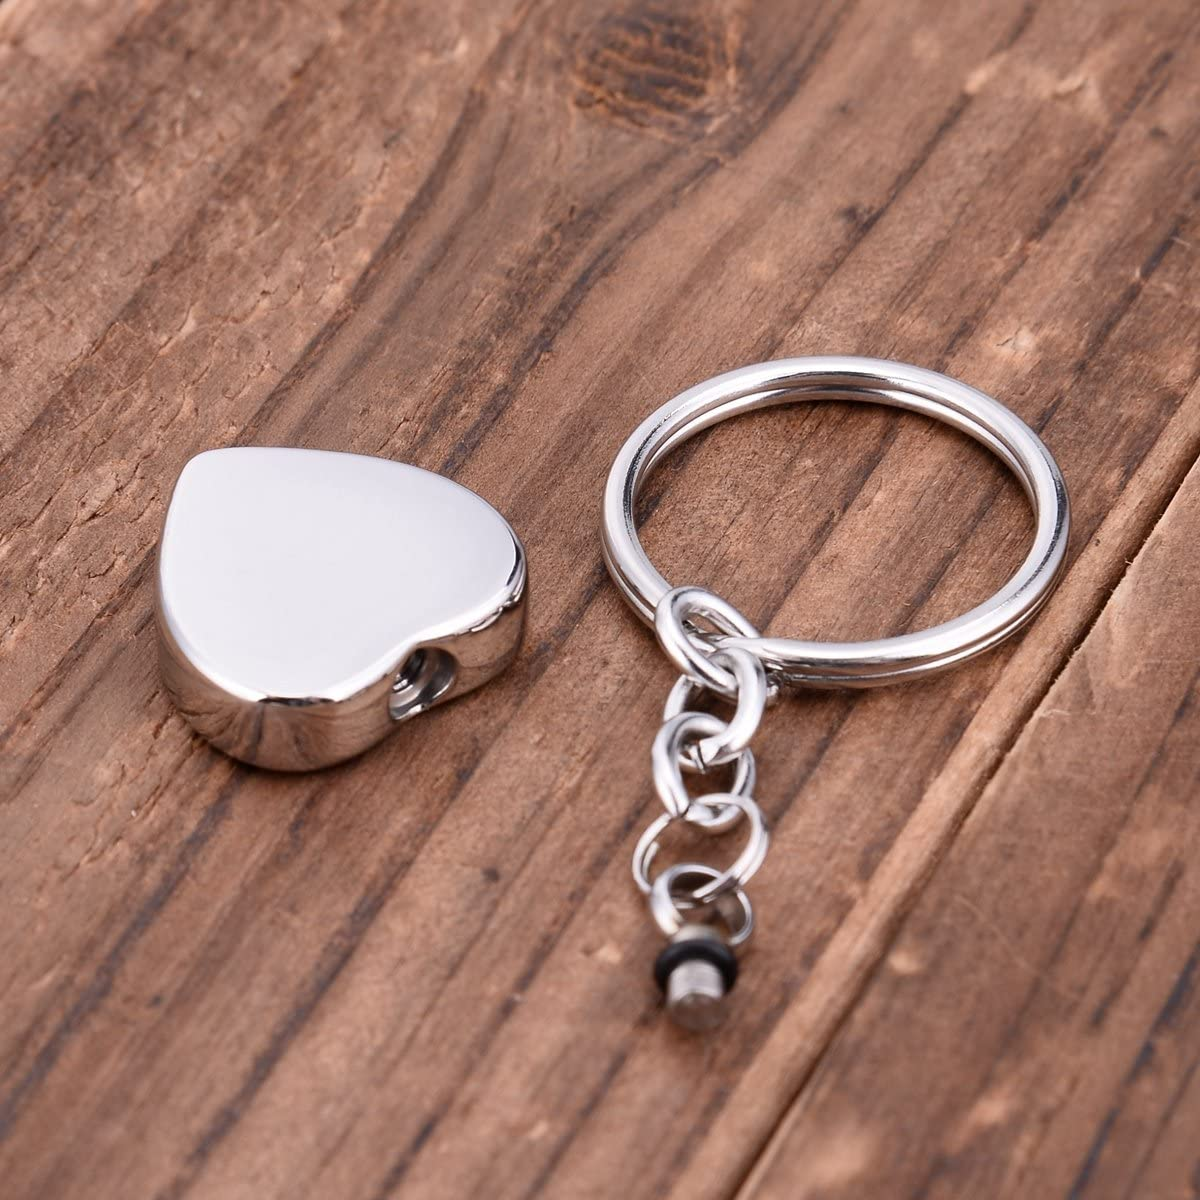 SG Cross Heart Pendant Cremation Urn Keychain Memorial Keepsake Ashes Jewelry with Free Engraved